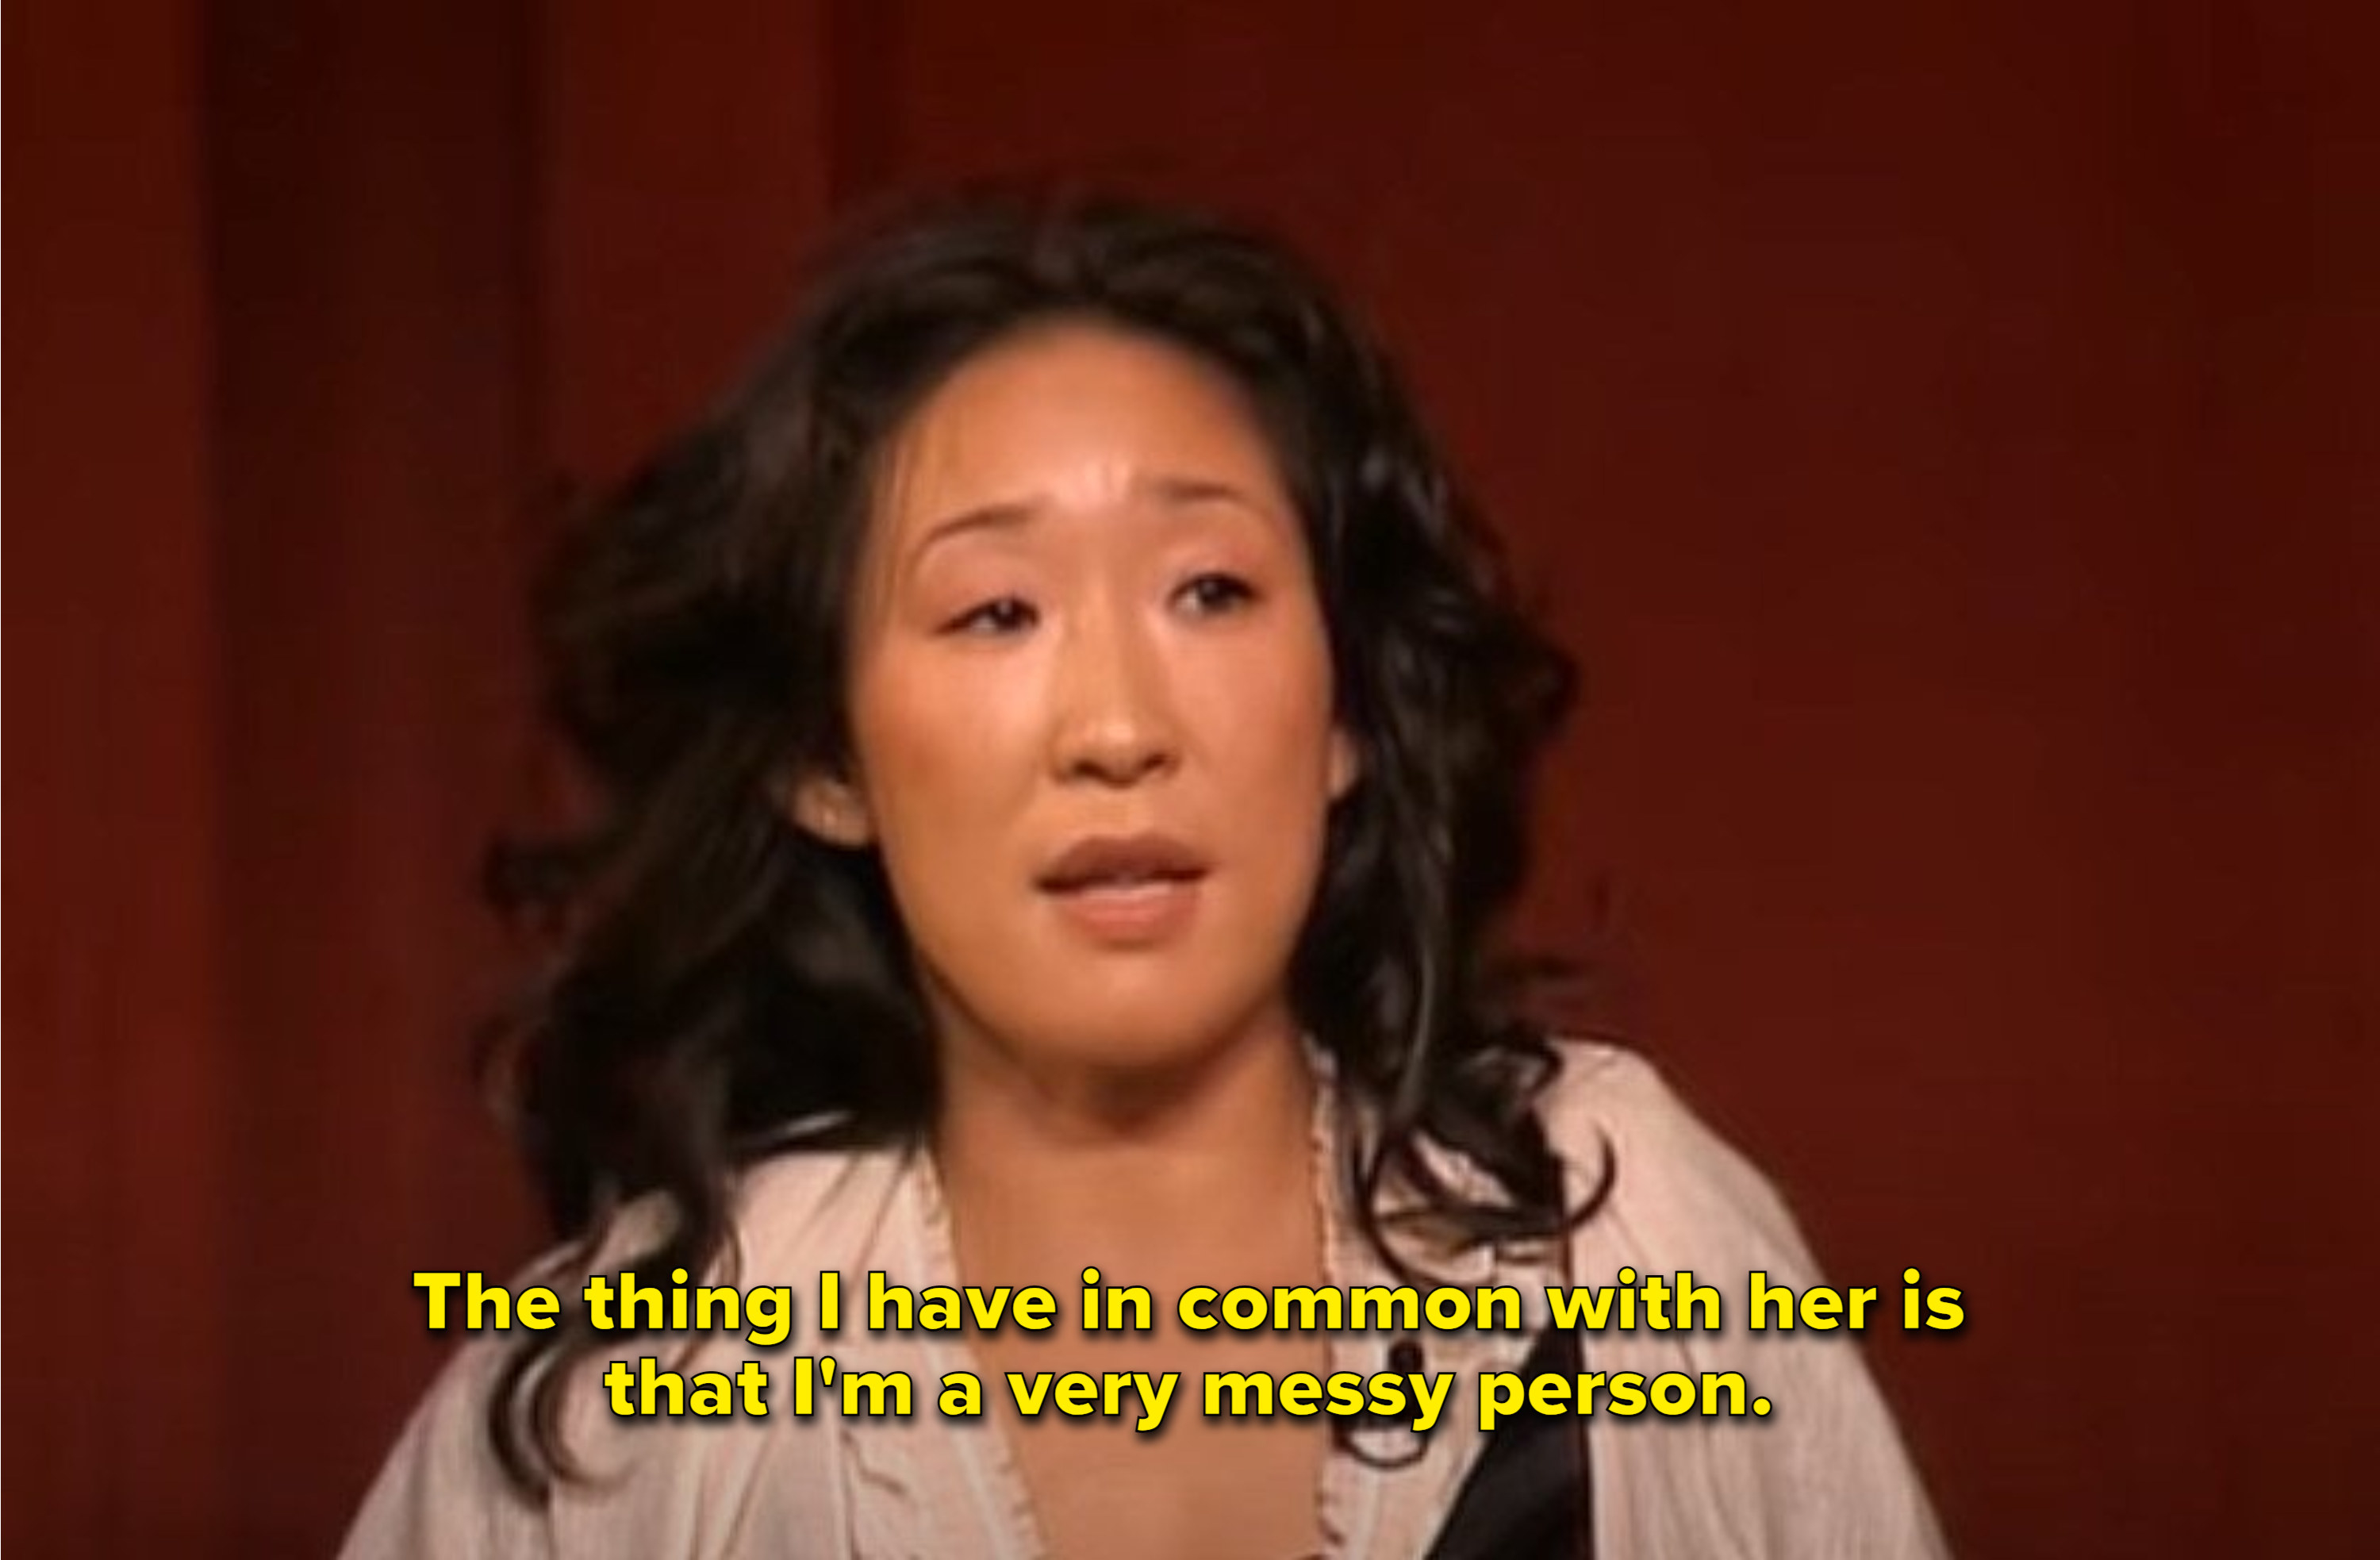 """Sandra Oh at PaleyFest: """"The thing I have in common with her is that I'm a very messy person"""""""